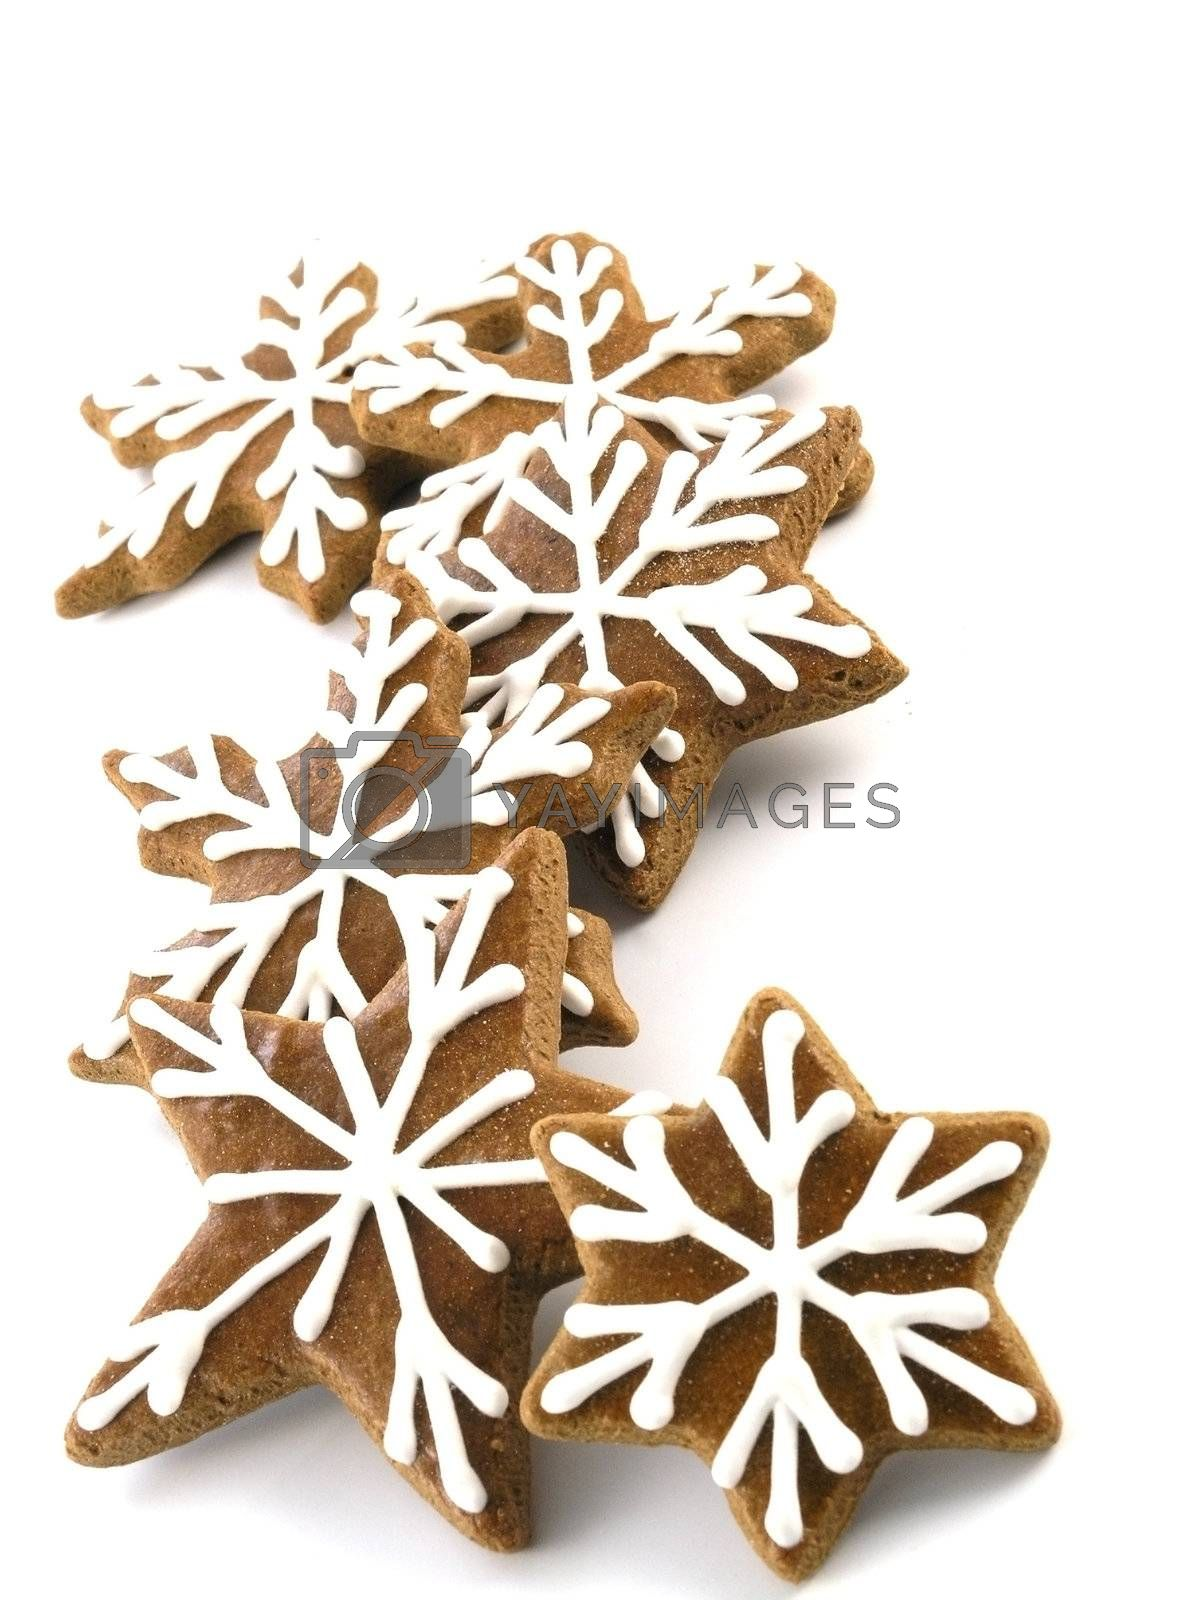 sweet food series: gingerbreads on white background